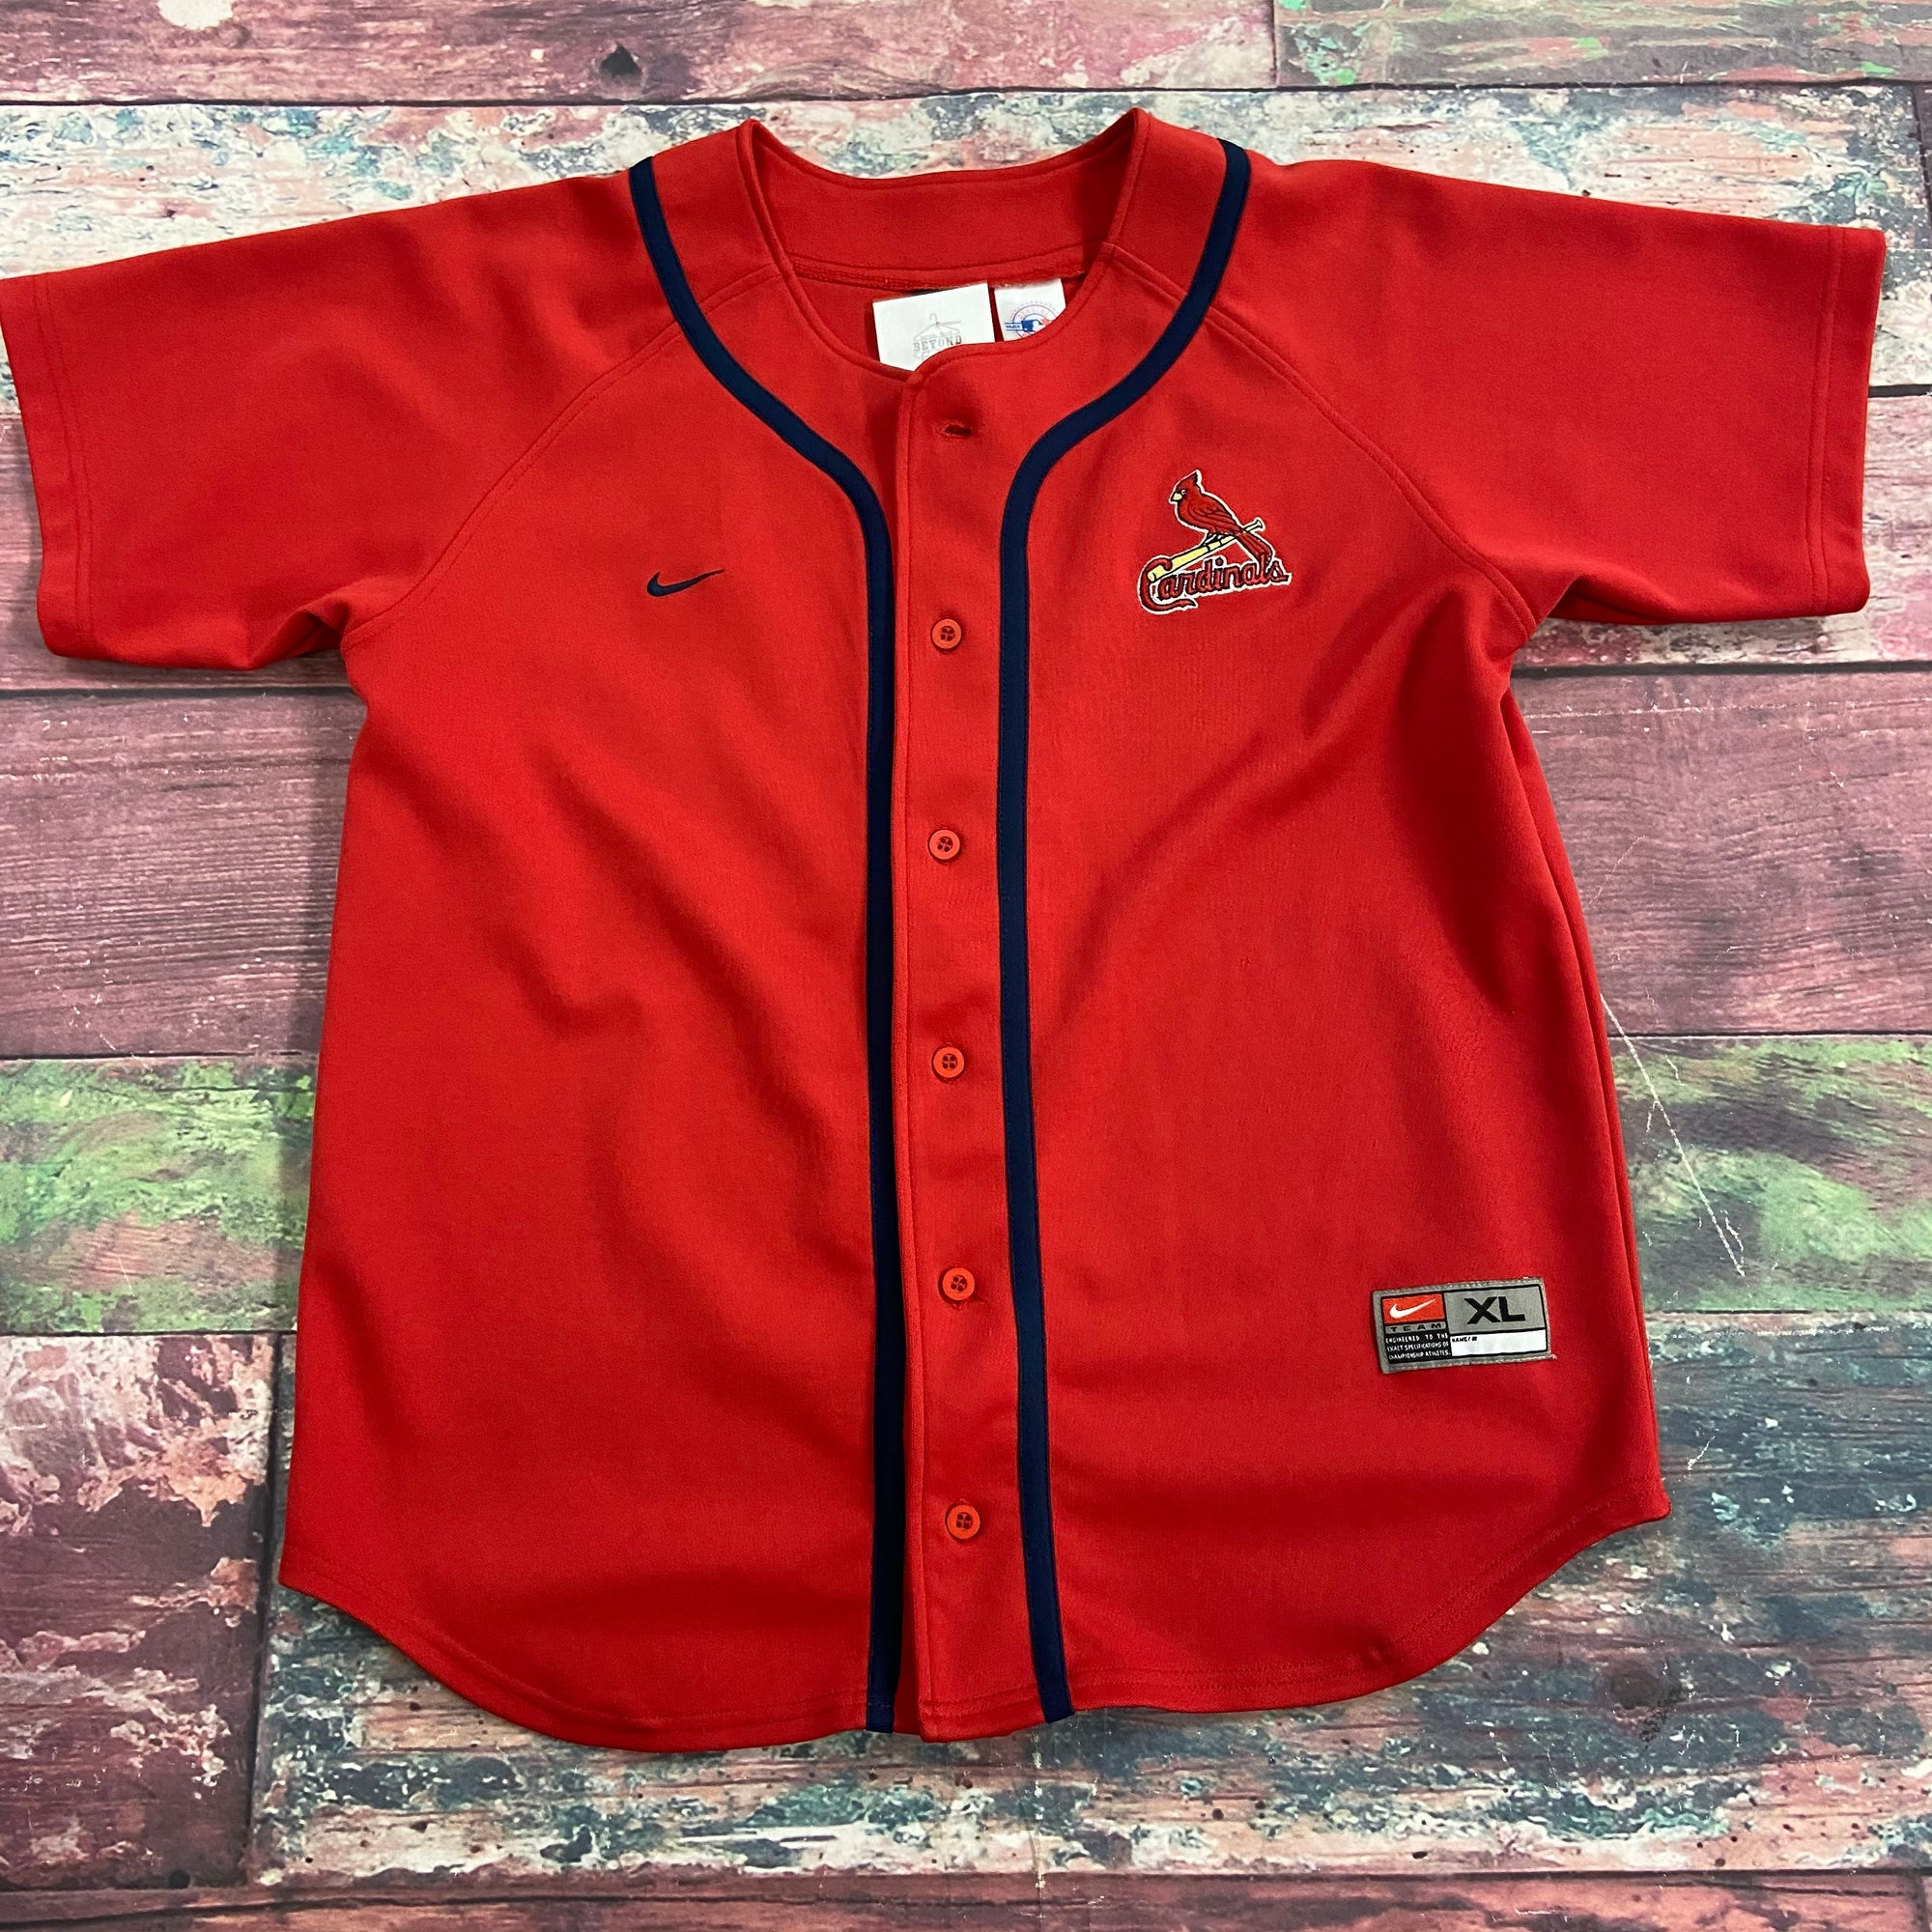 Nike St Louis Cardinals MLB Pujols 5 Jersey Youth Boys Size XL